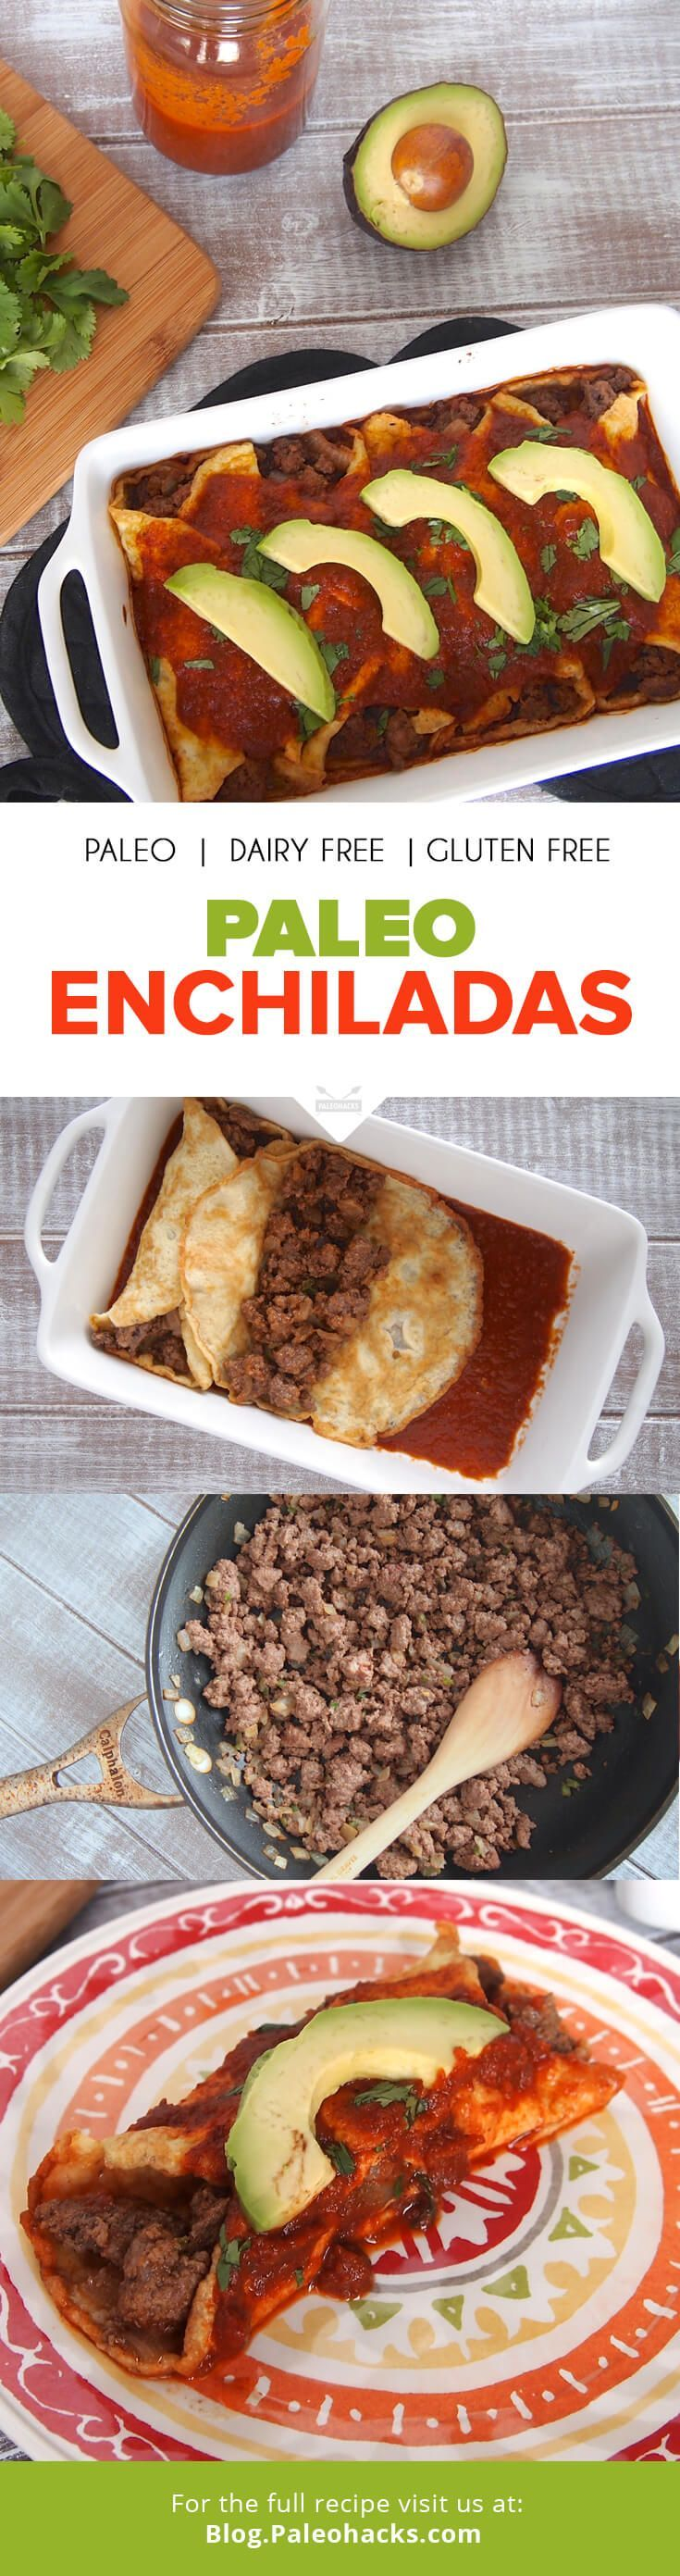 Mexican food may seem a bit out of reach on the Paleo diet, but this Paleo Enchiladas recipe uses grain-free tortillas to recreate an all time favorite. For the full recipe visit us here: paleo.co/... #paleohacks #paleo